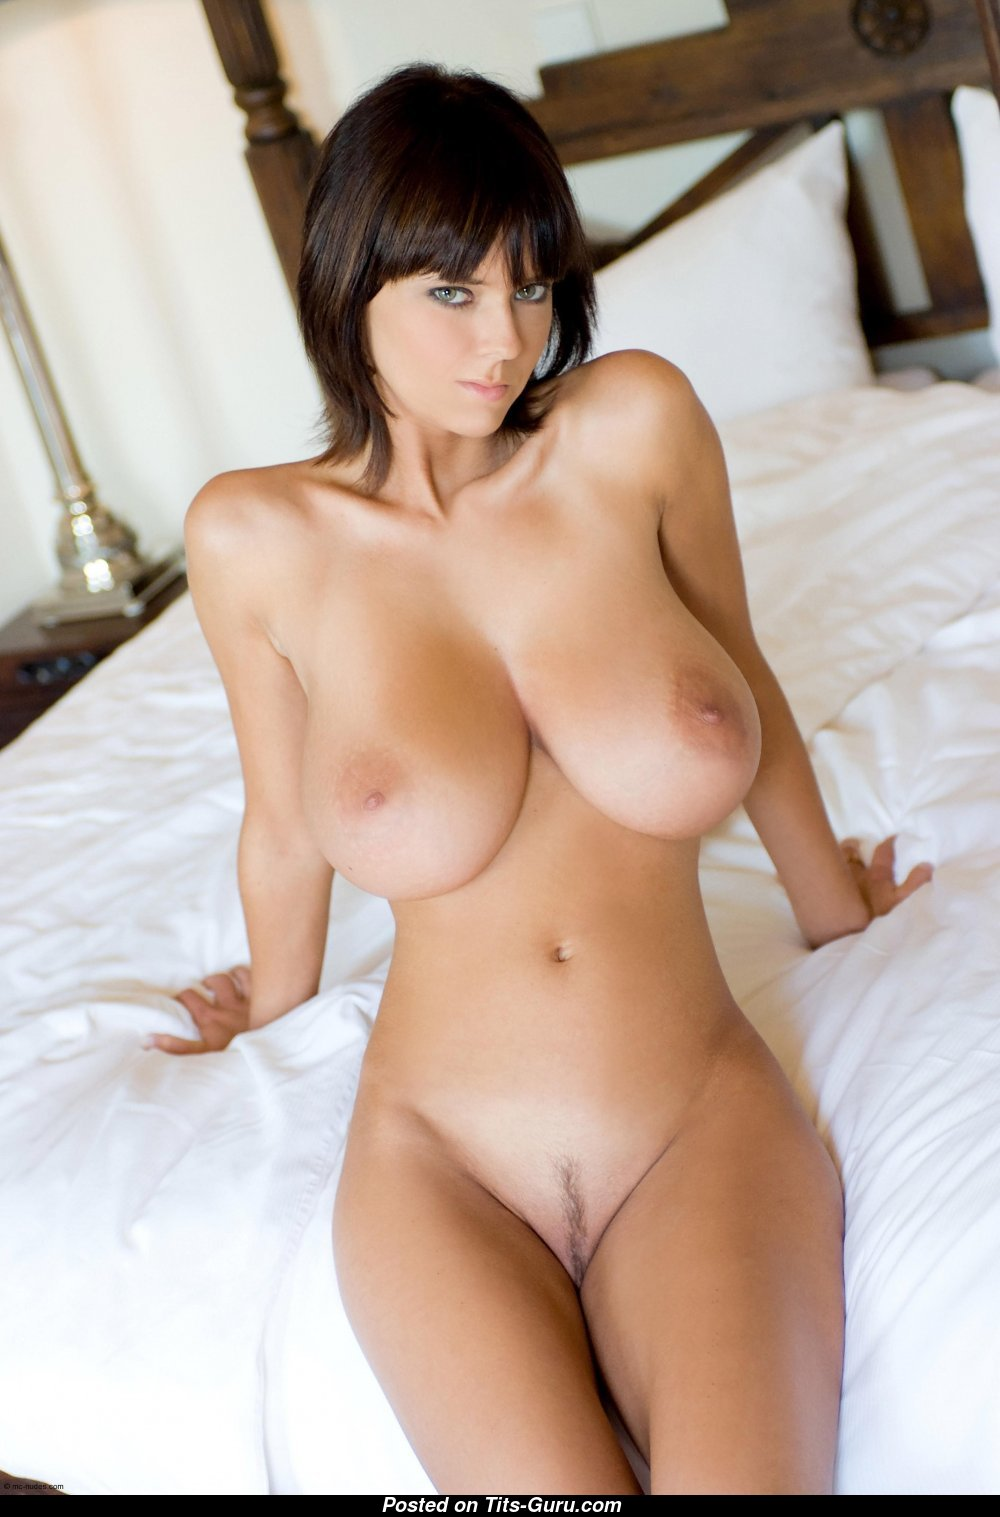 Pictures Of Naked Tits photo 18